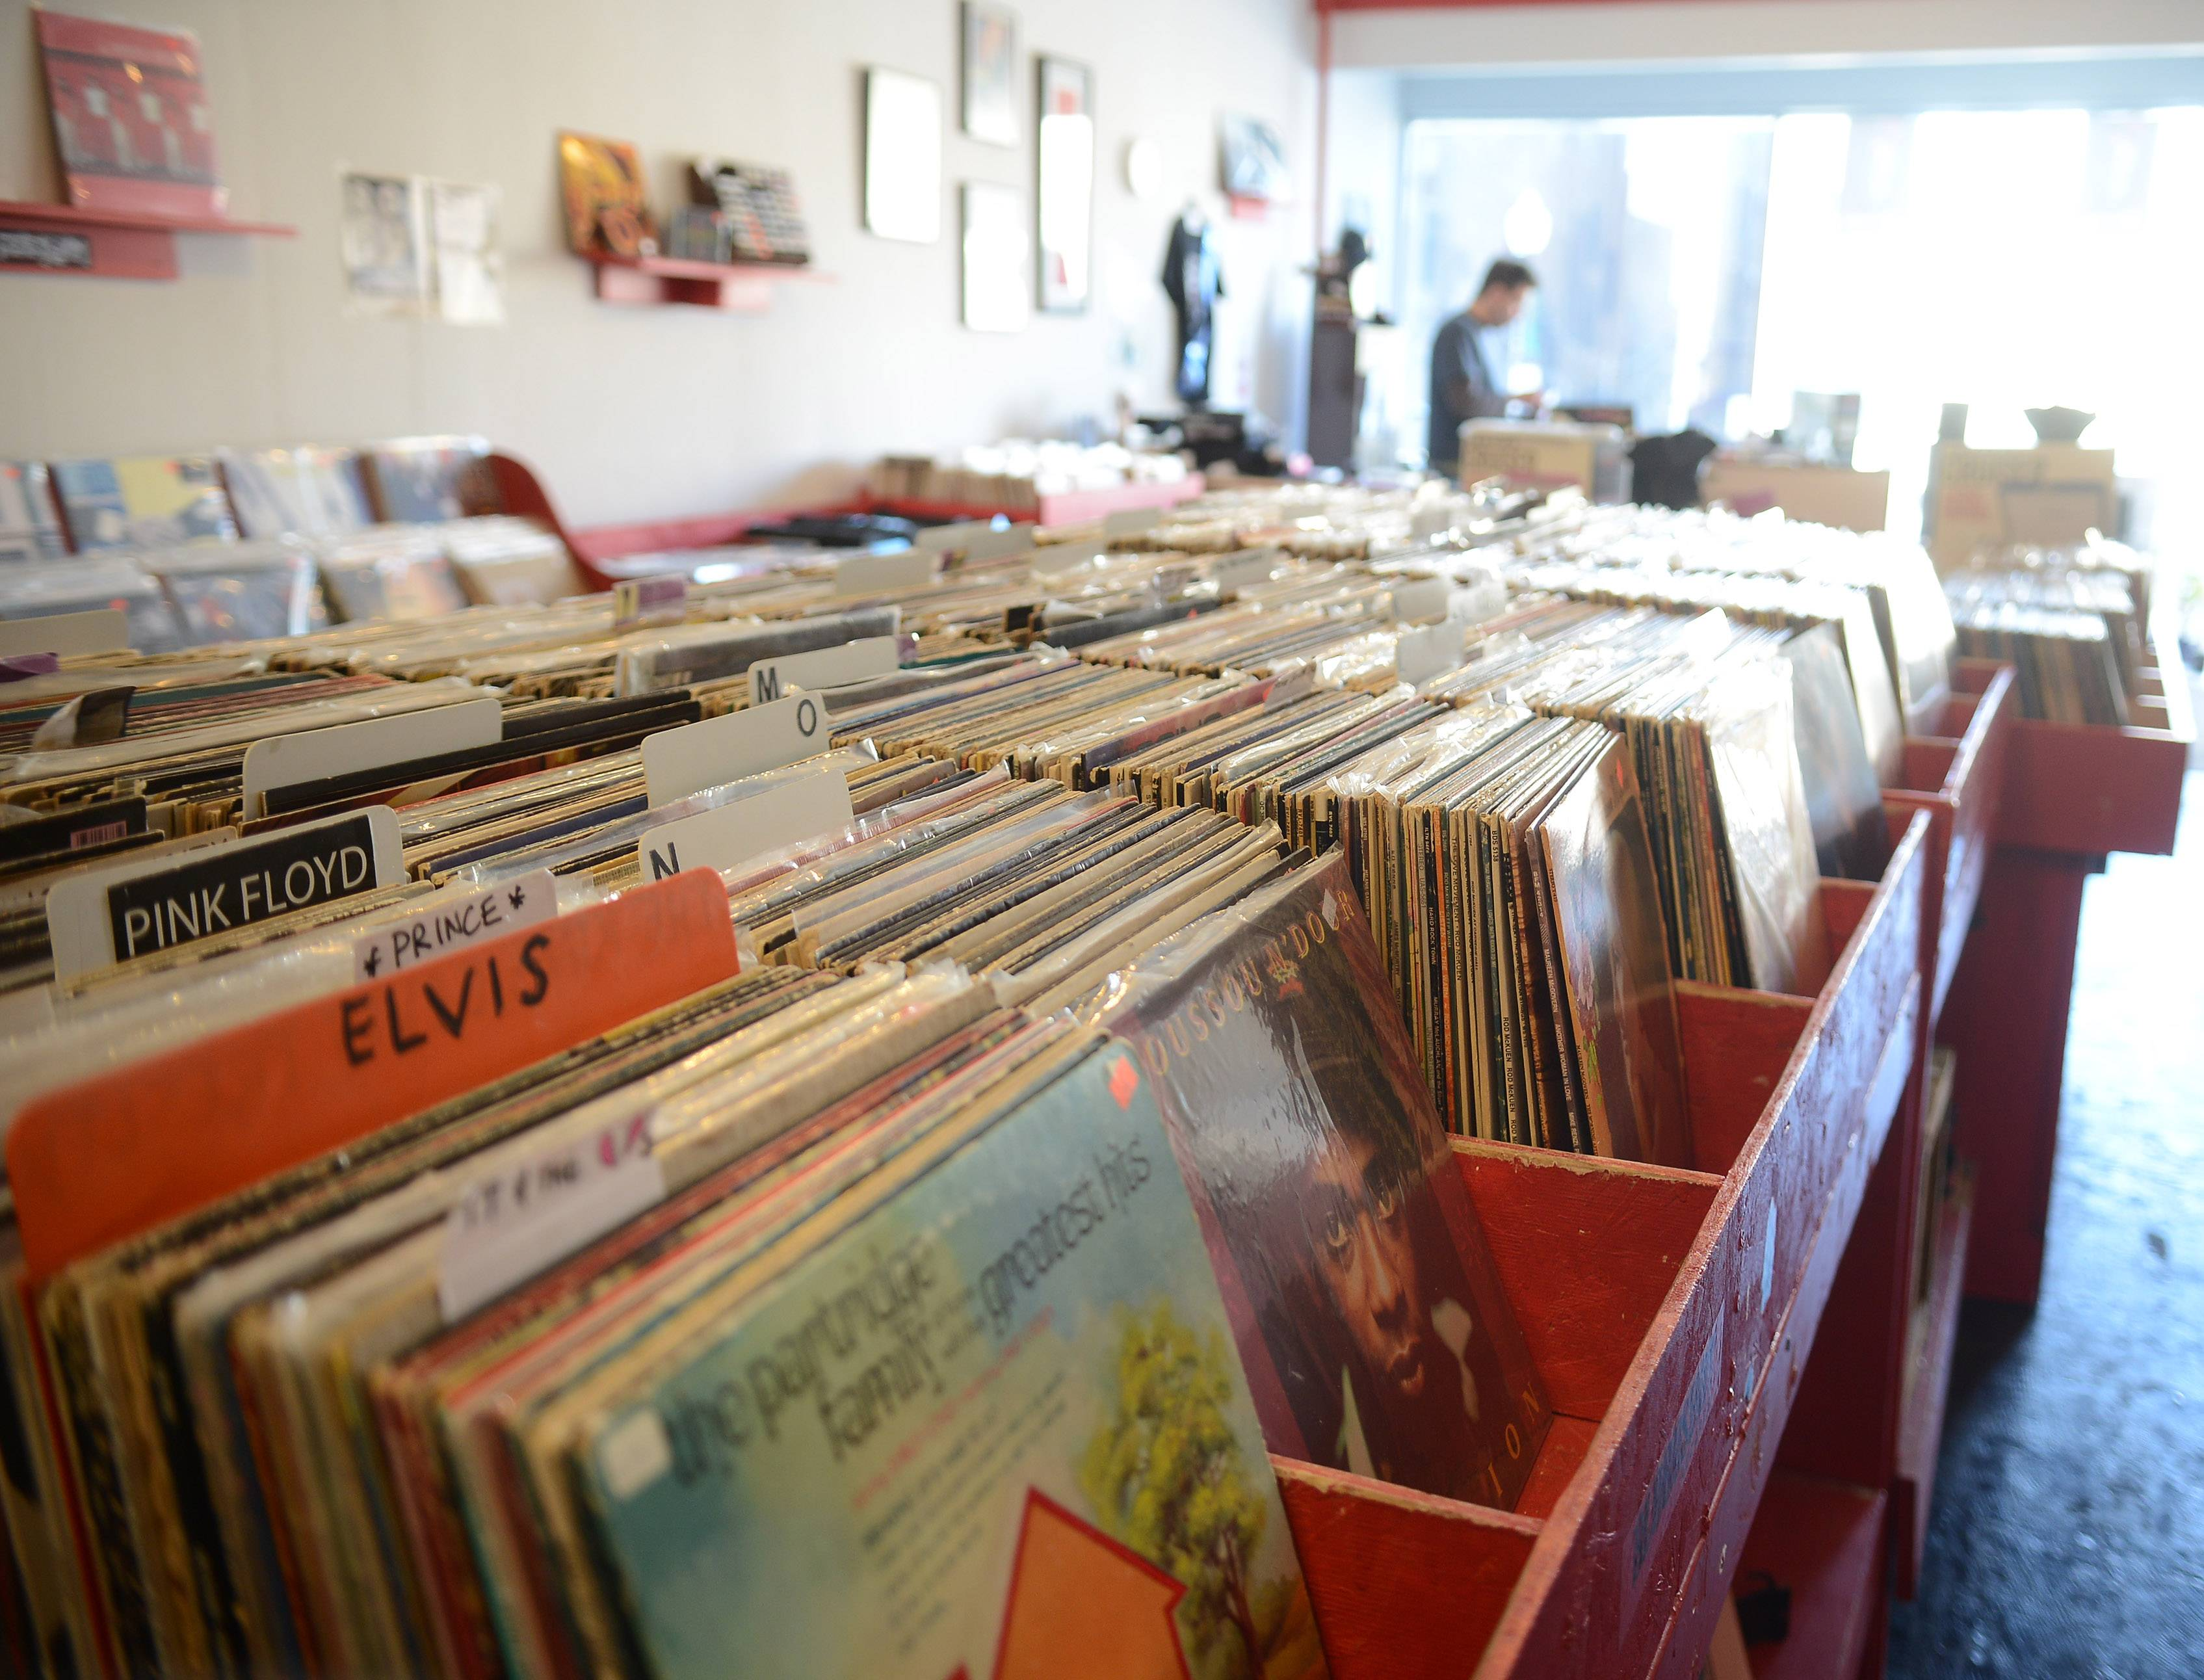 Rediscover Records in Elgin is among the hundreds of stores across the country taking part in Saturday's Record Store Day. The annual event allows retailers to sell exclusive records, CDs and T-shirts not available anywhere else.